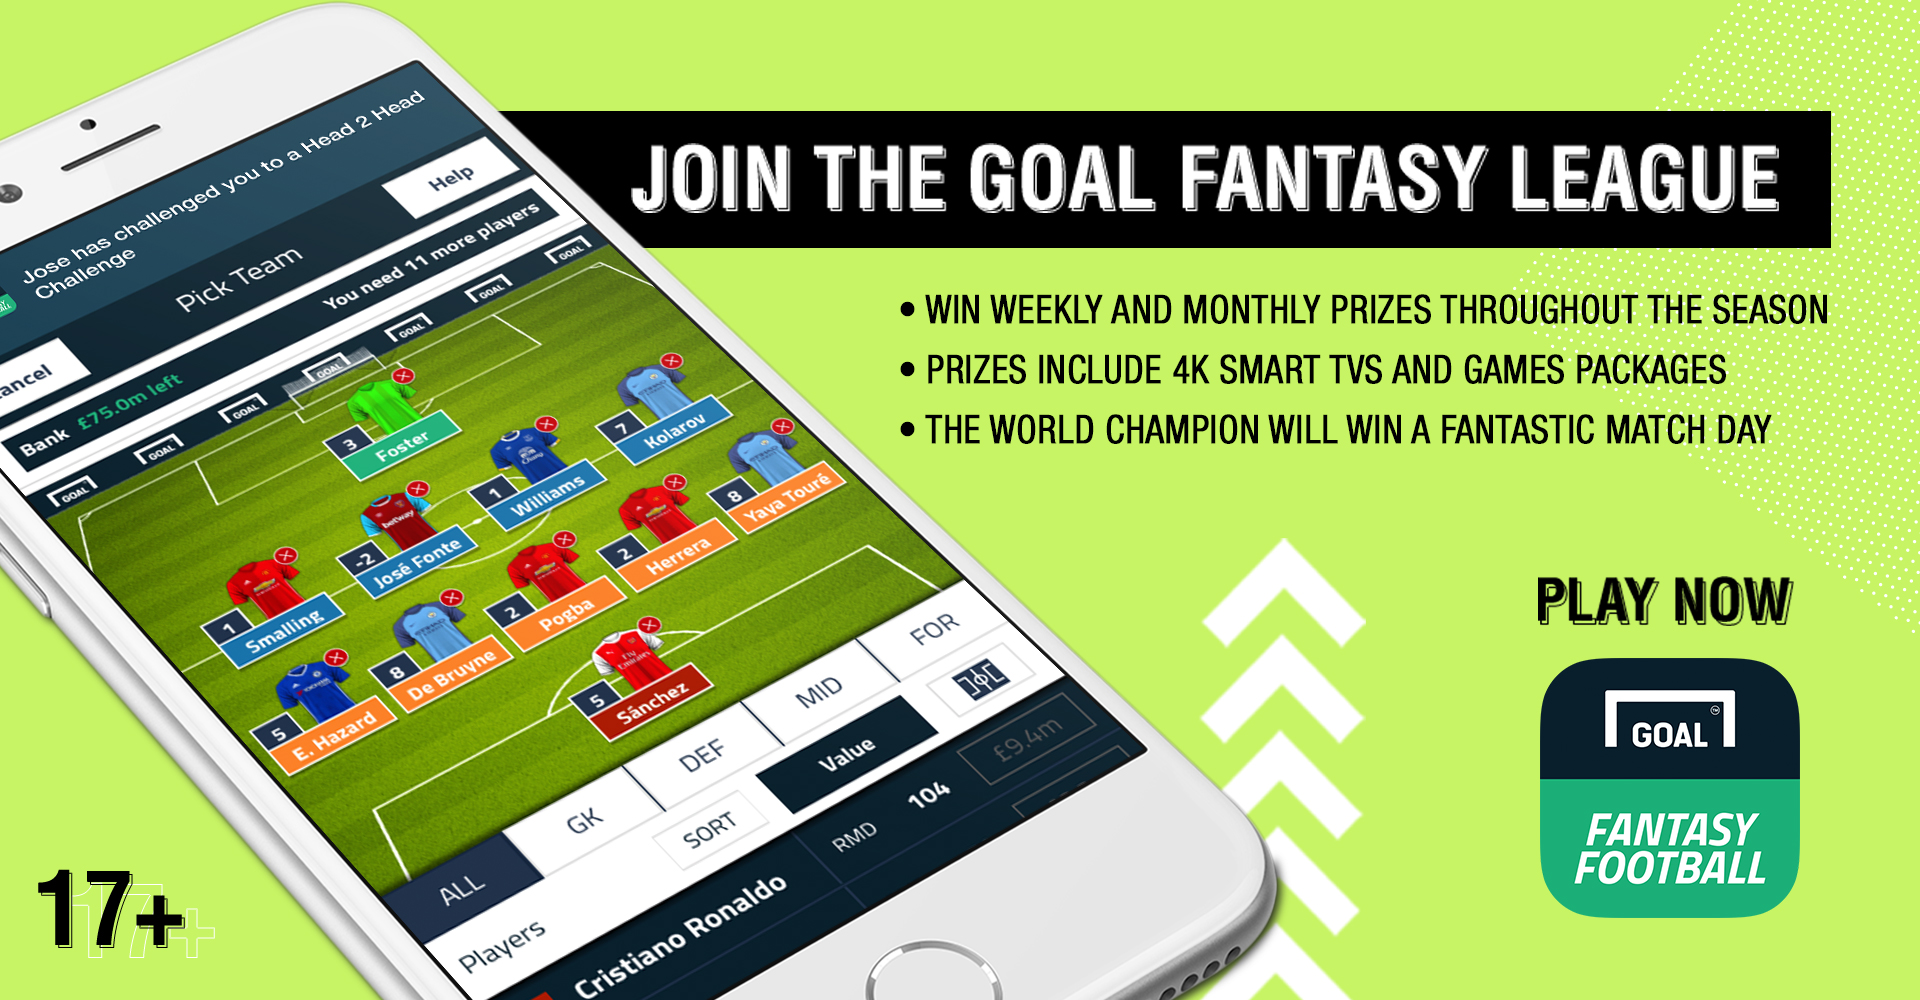 Goal-Fantasy-Football-StartPlayingNow